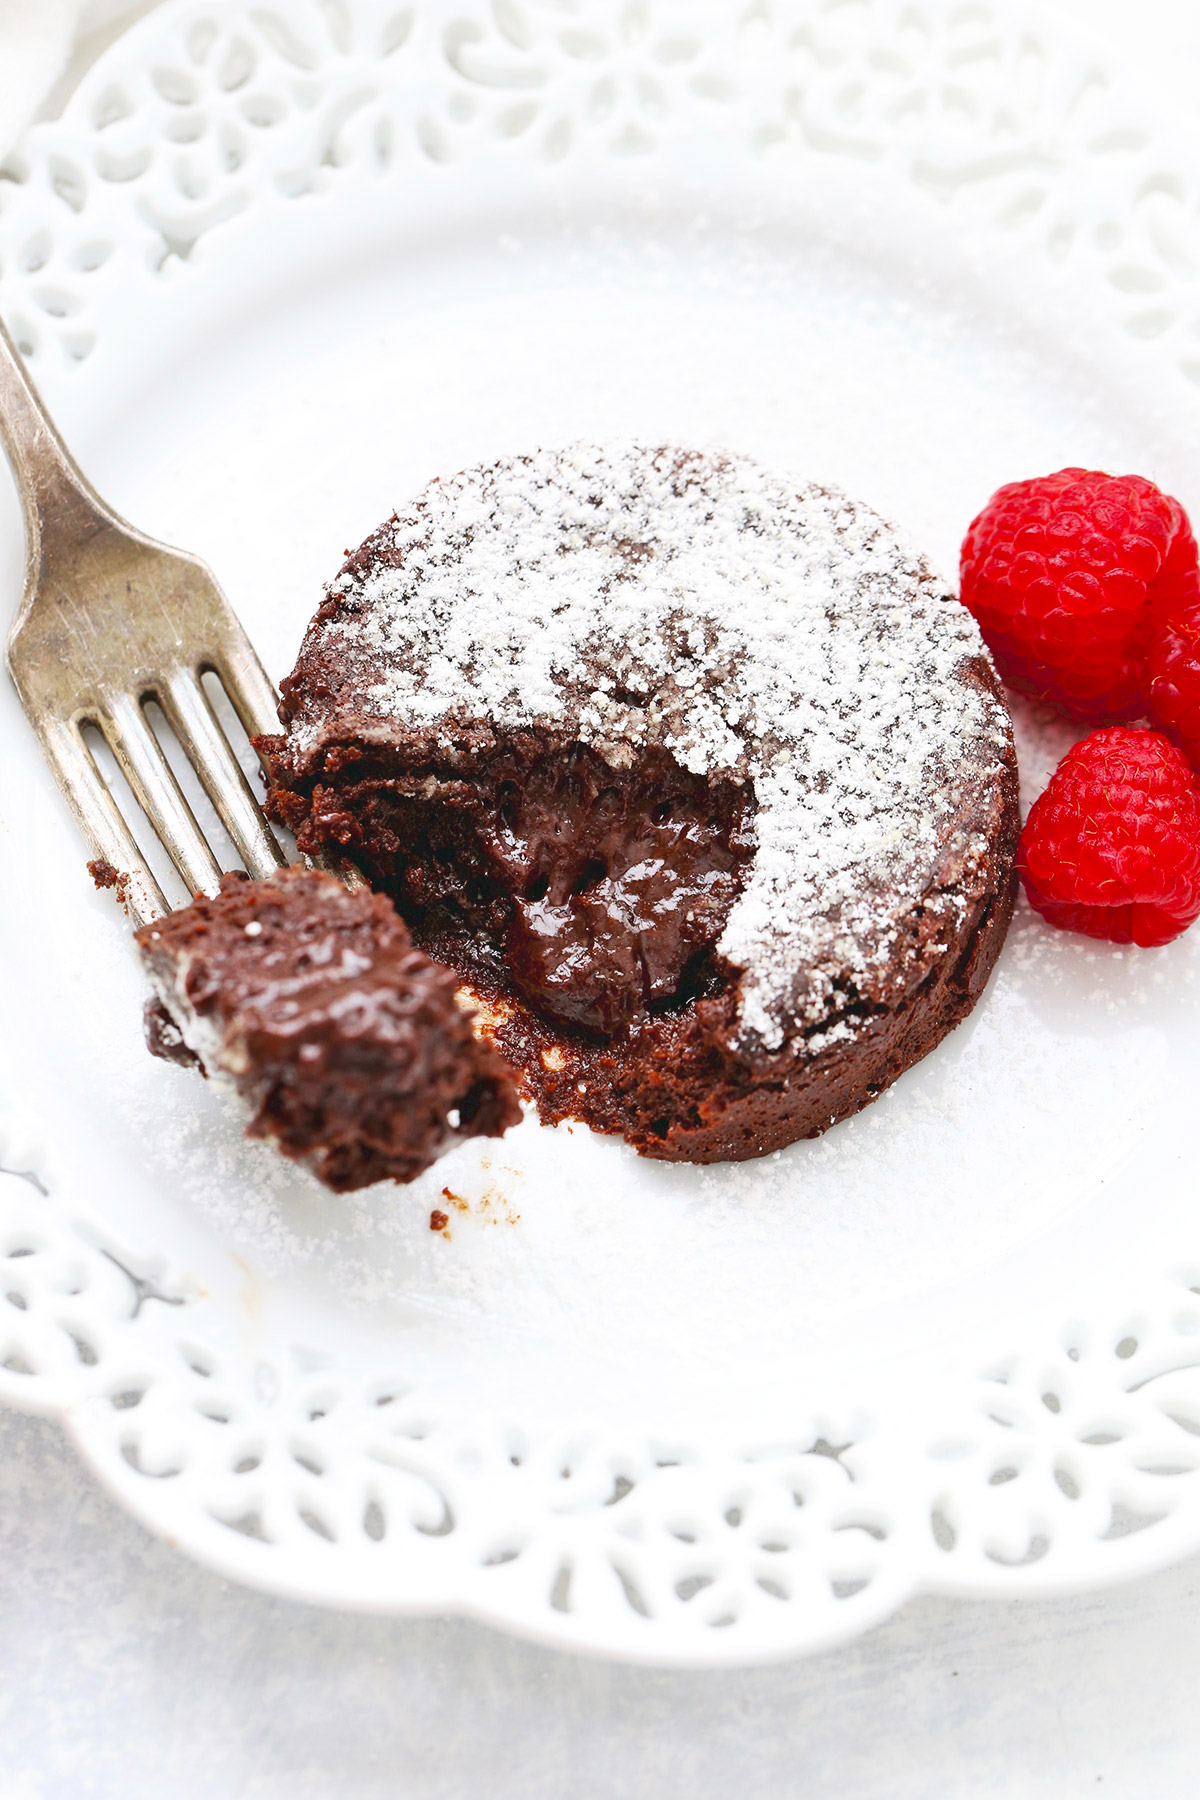 Paleo Chocolate Lava Cake from One Lovely Life